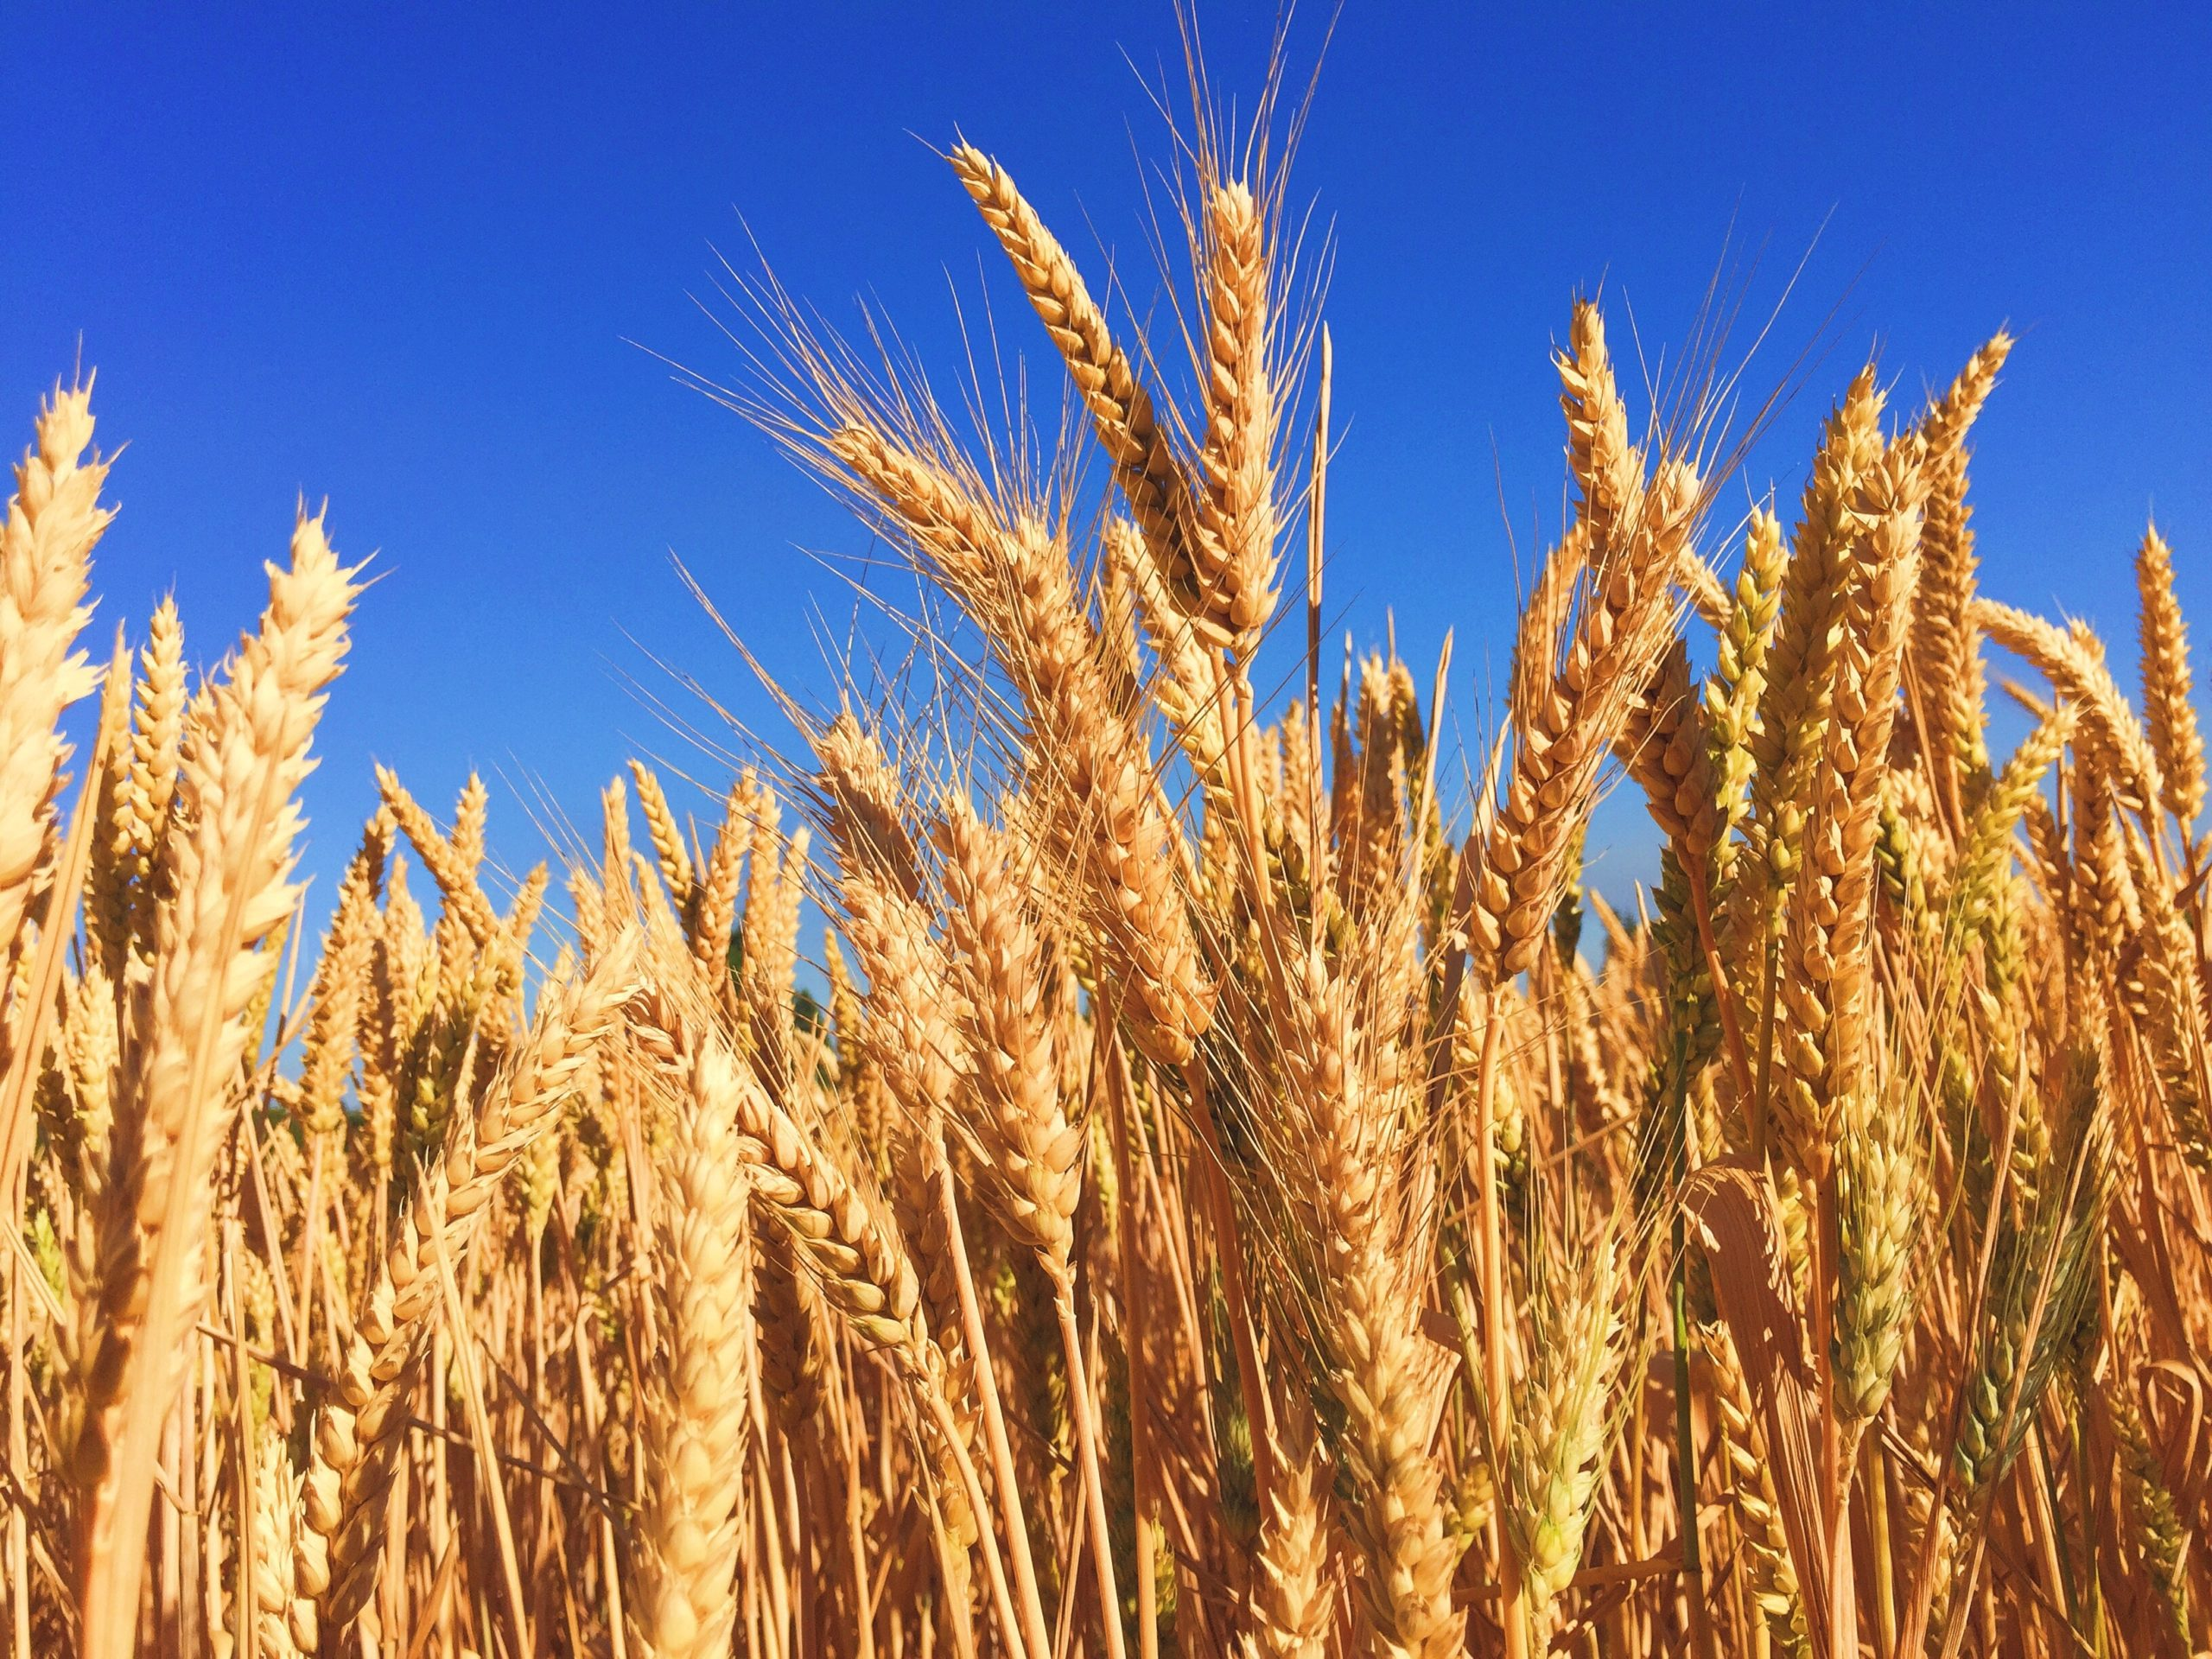 A field of golden wheat is a stark contrast to the bright blue sky behind it.